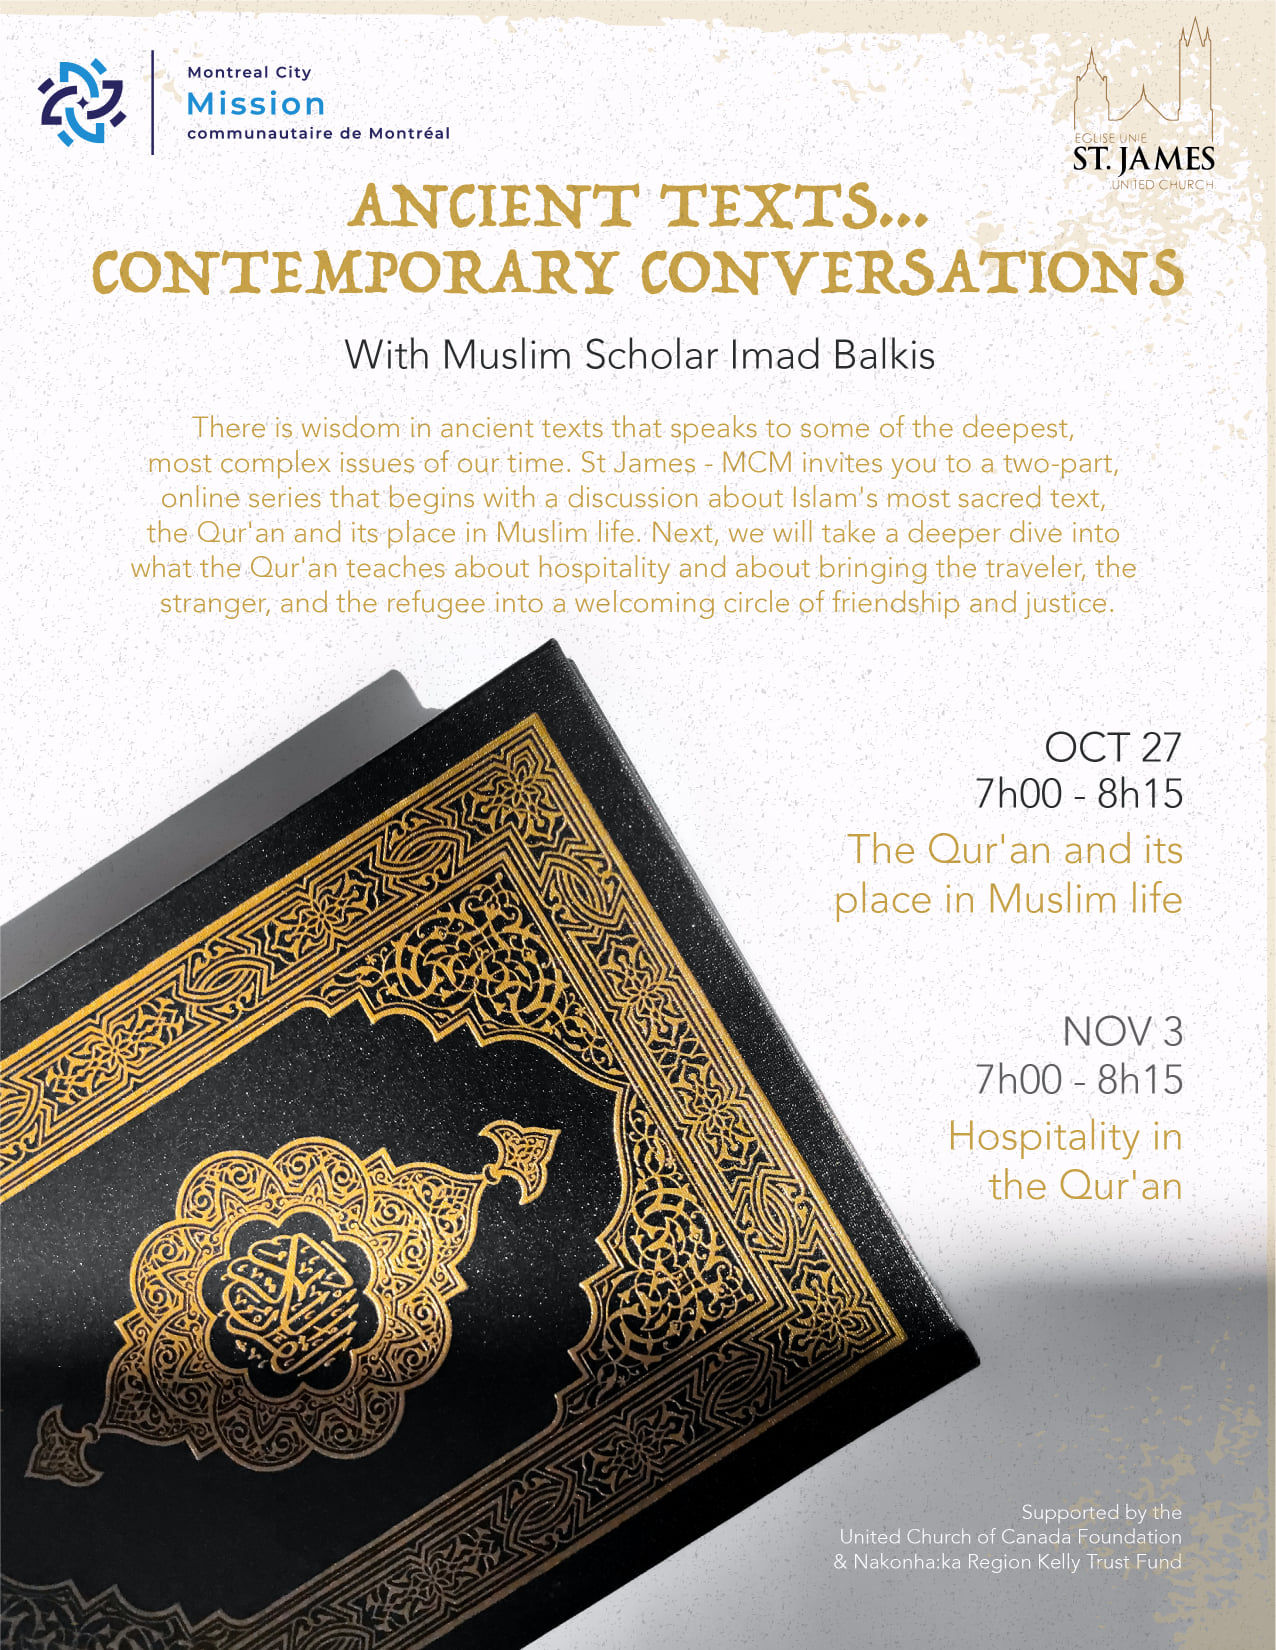 Montreal City Mission The Quran and Its Place in Muslim Life with Imad Balkis